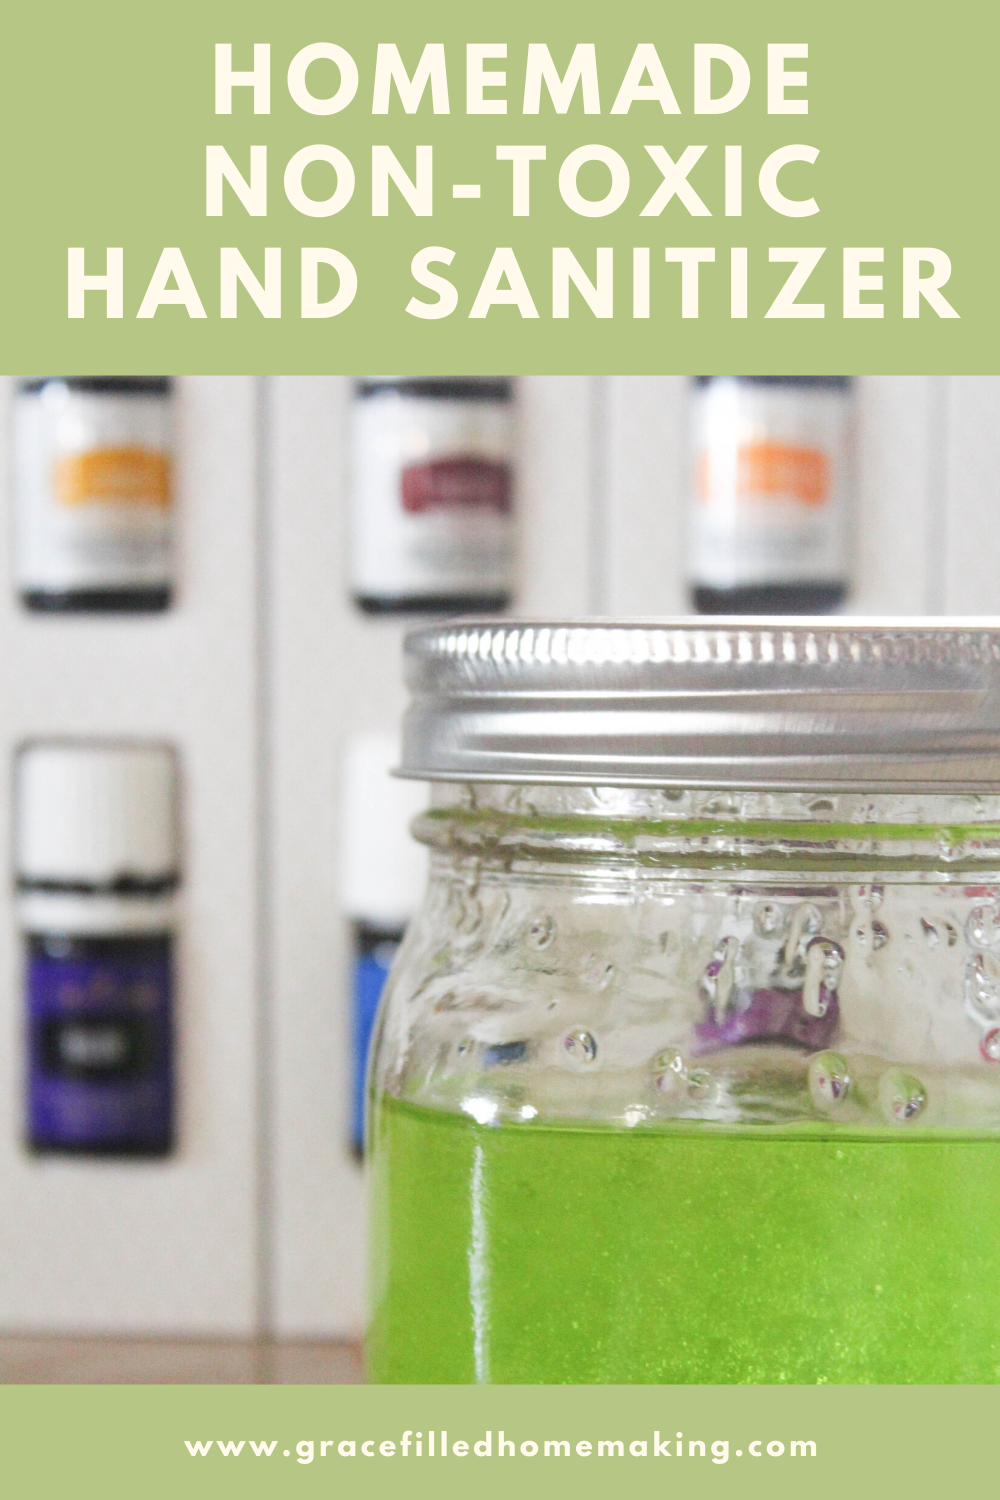 My Homemade Hand Sanitizer is frugal, non-toxic, and needs just four ingredients. It takes just a few minutes to make and smells great!